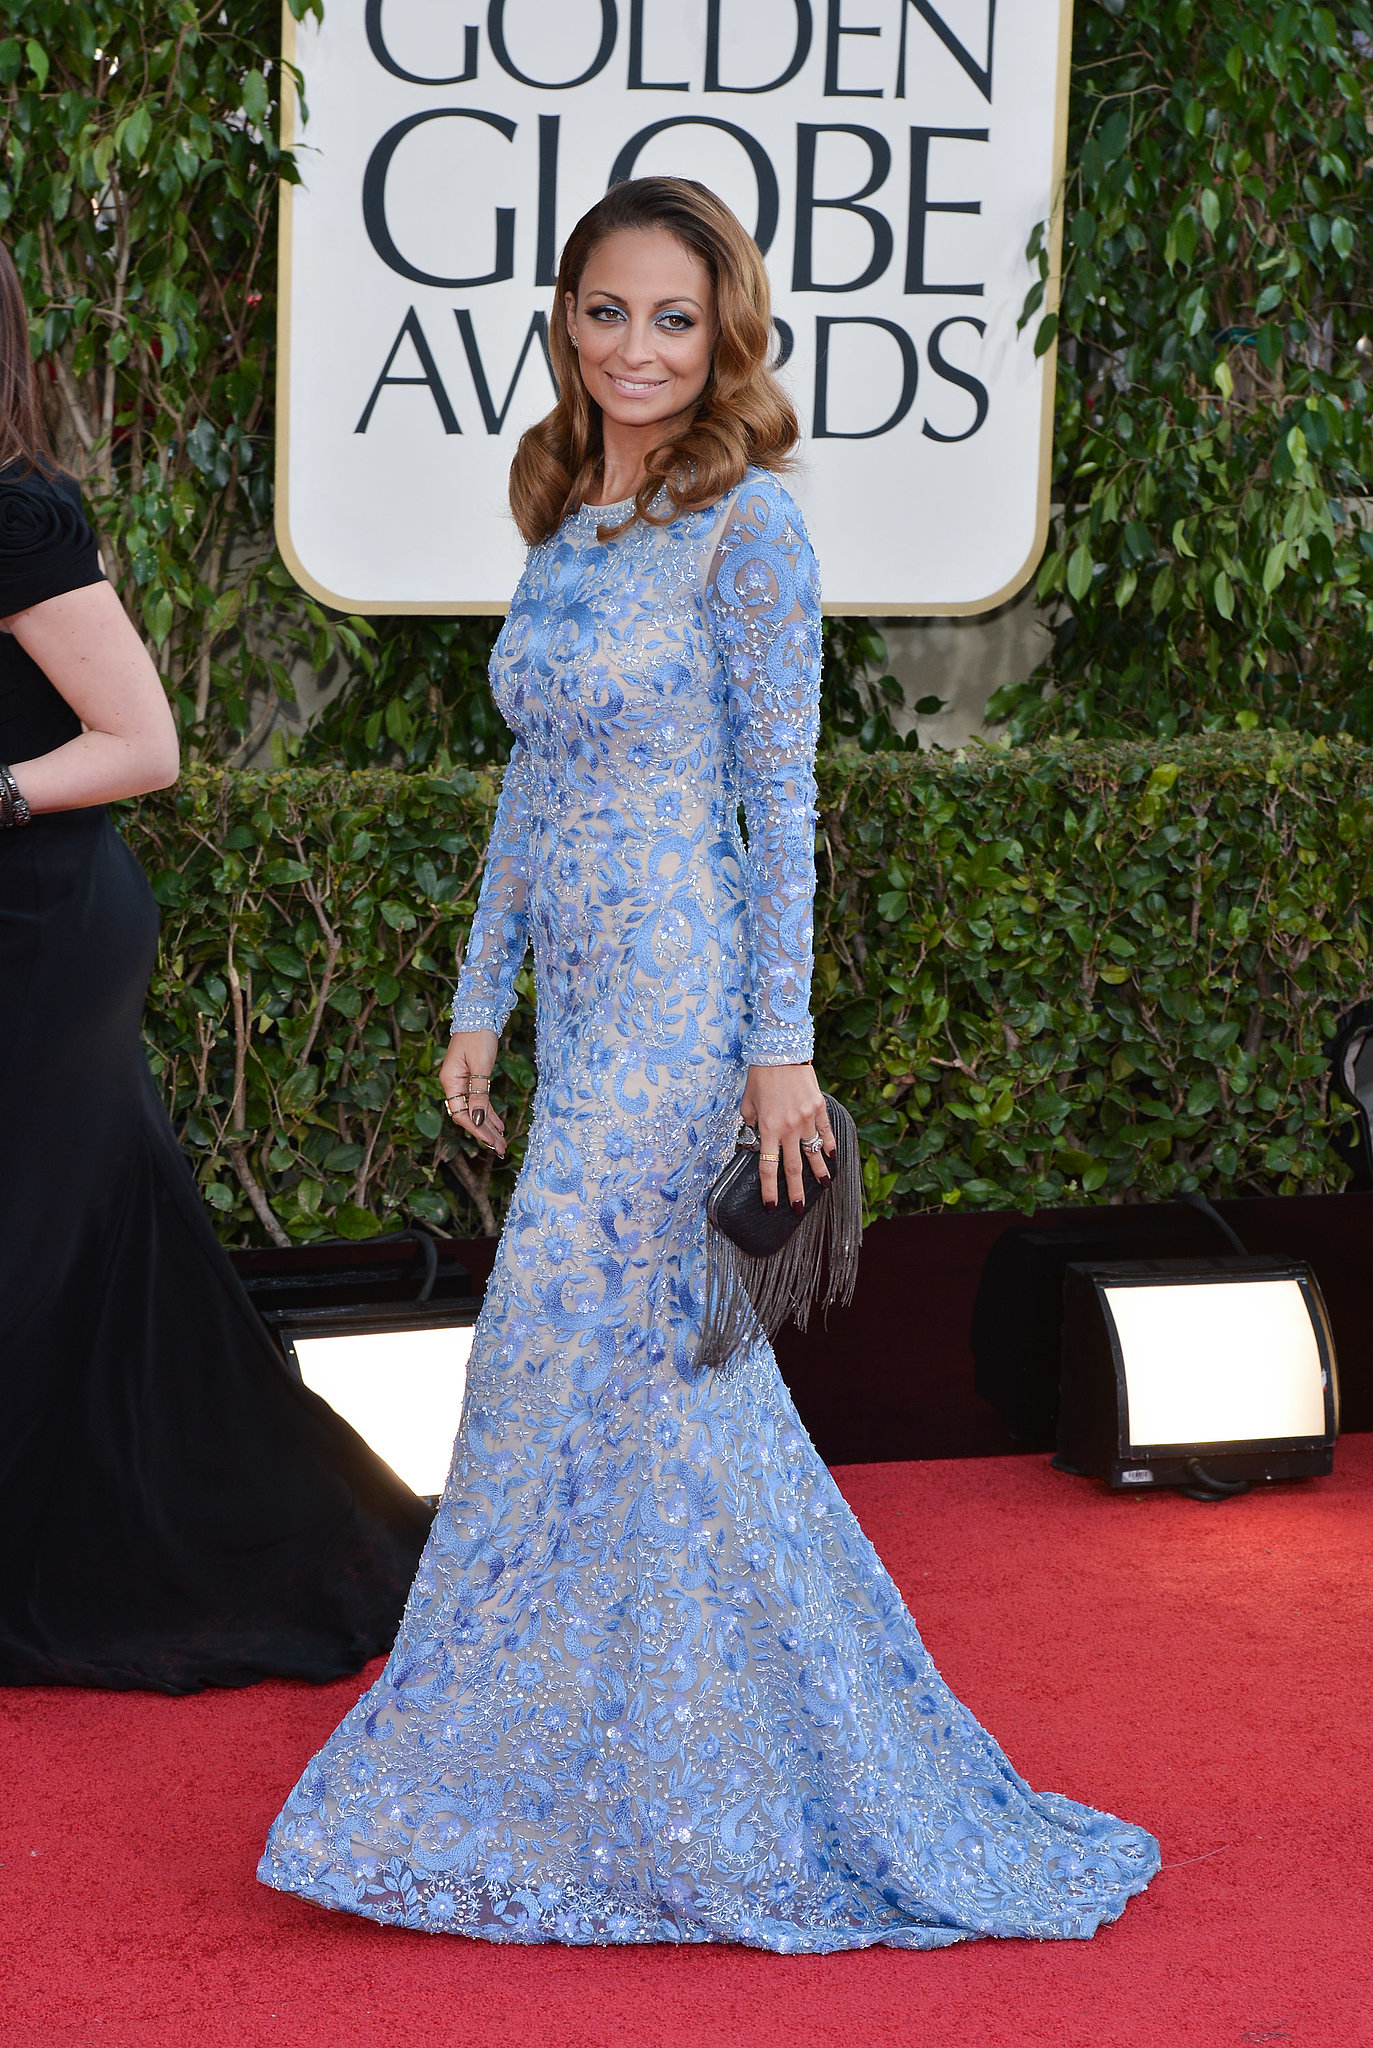 Nicole was a vision in blue when she walked the red carpet at the Golden Globes in LA